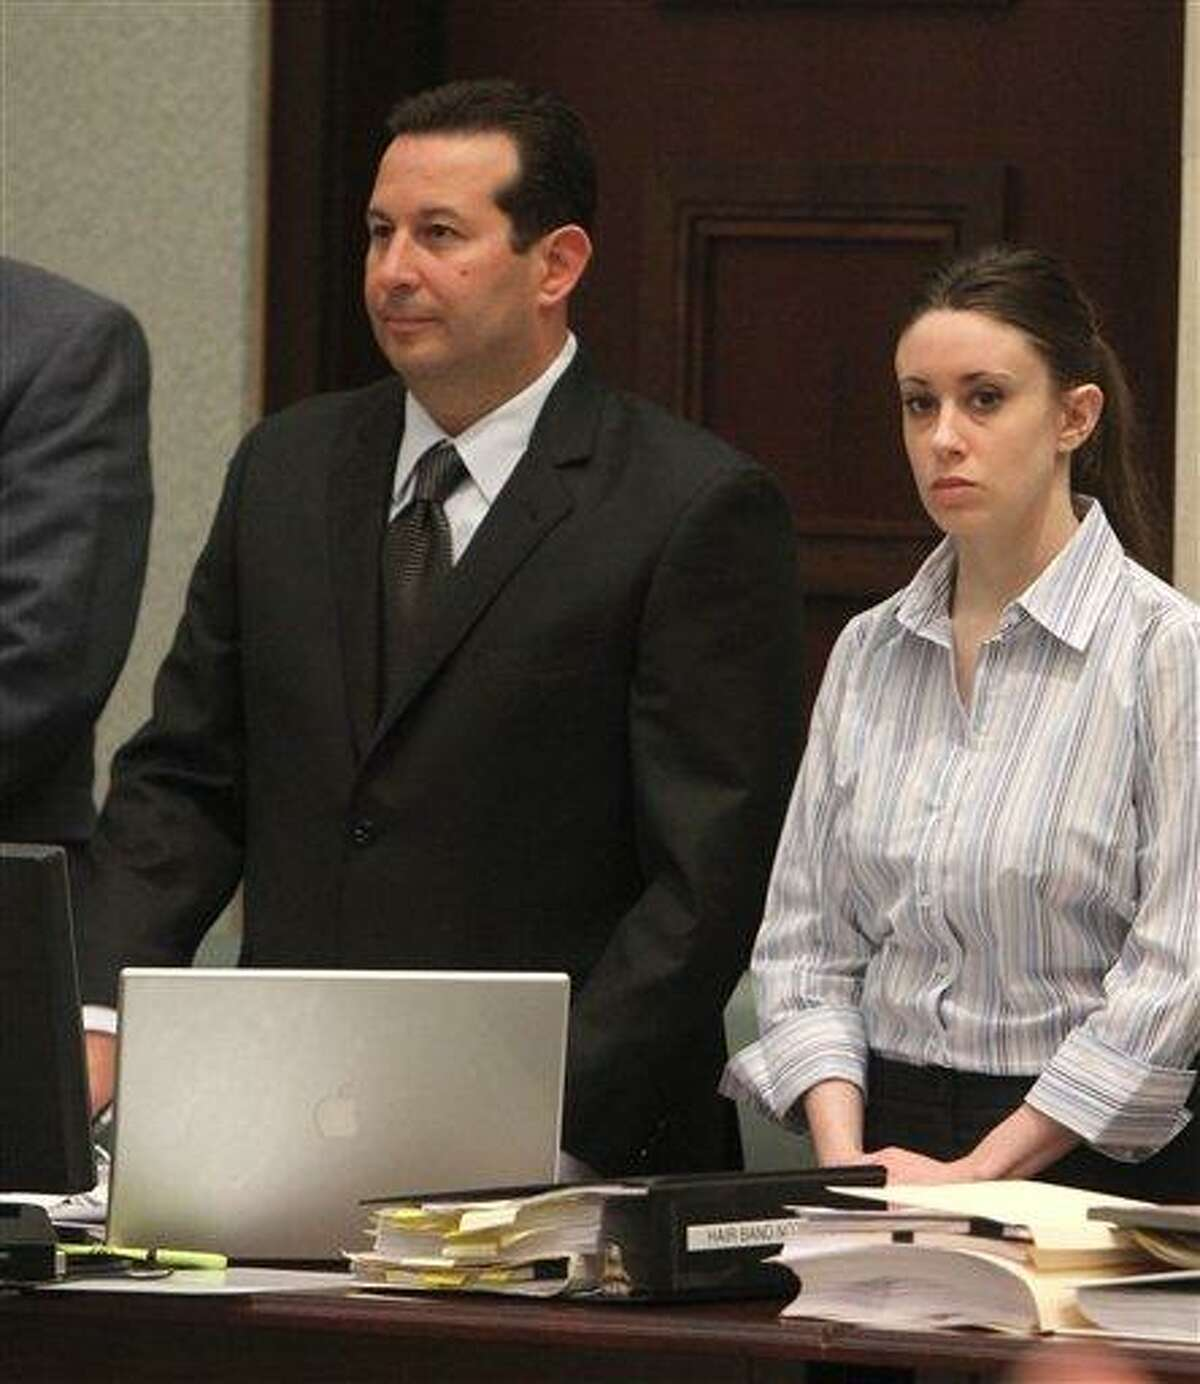 Attorney Jose Baez and his client Casey Anthony stand as the jury enters to courtroom for Anthony's trial at the Orange County Courthouse on Saturday, June 4, 2011 in Orlando, Fla. Anthony, 25, is charged with murder in the 2008 death of her daughter Caylee. If convicted, she could be sentenced to death. (AP Photo/Red Huber, Pool)